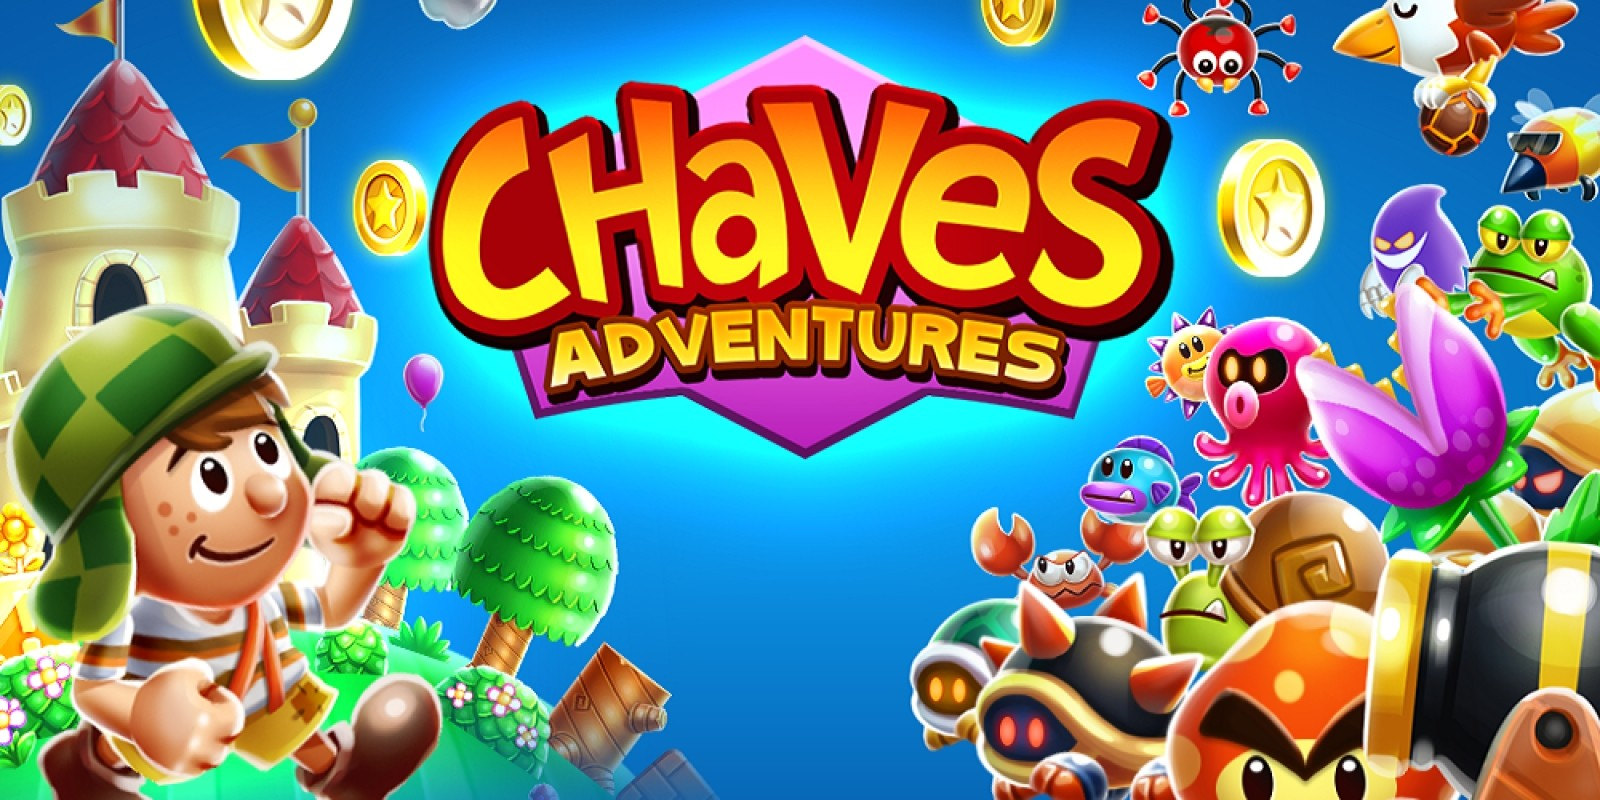 Chaves Adventures - Android Platform Game Template